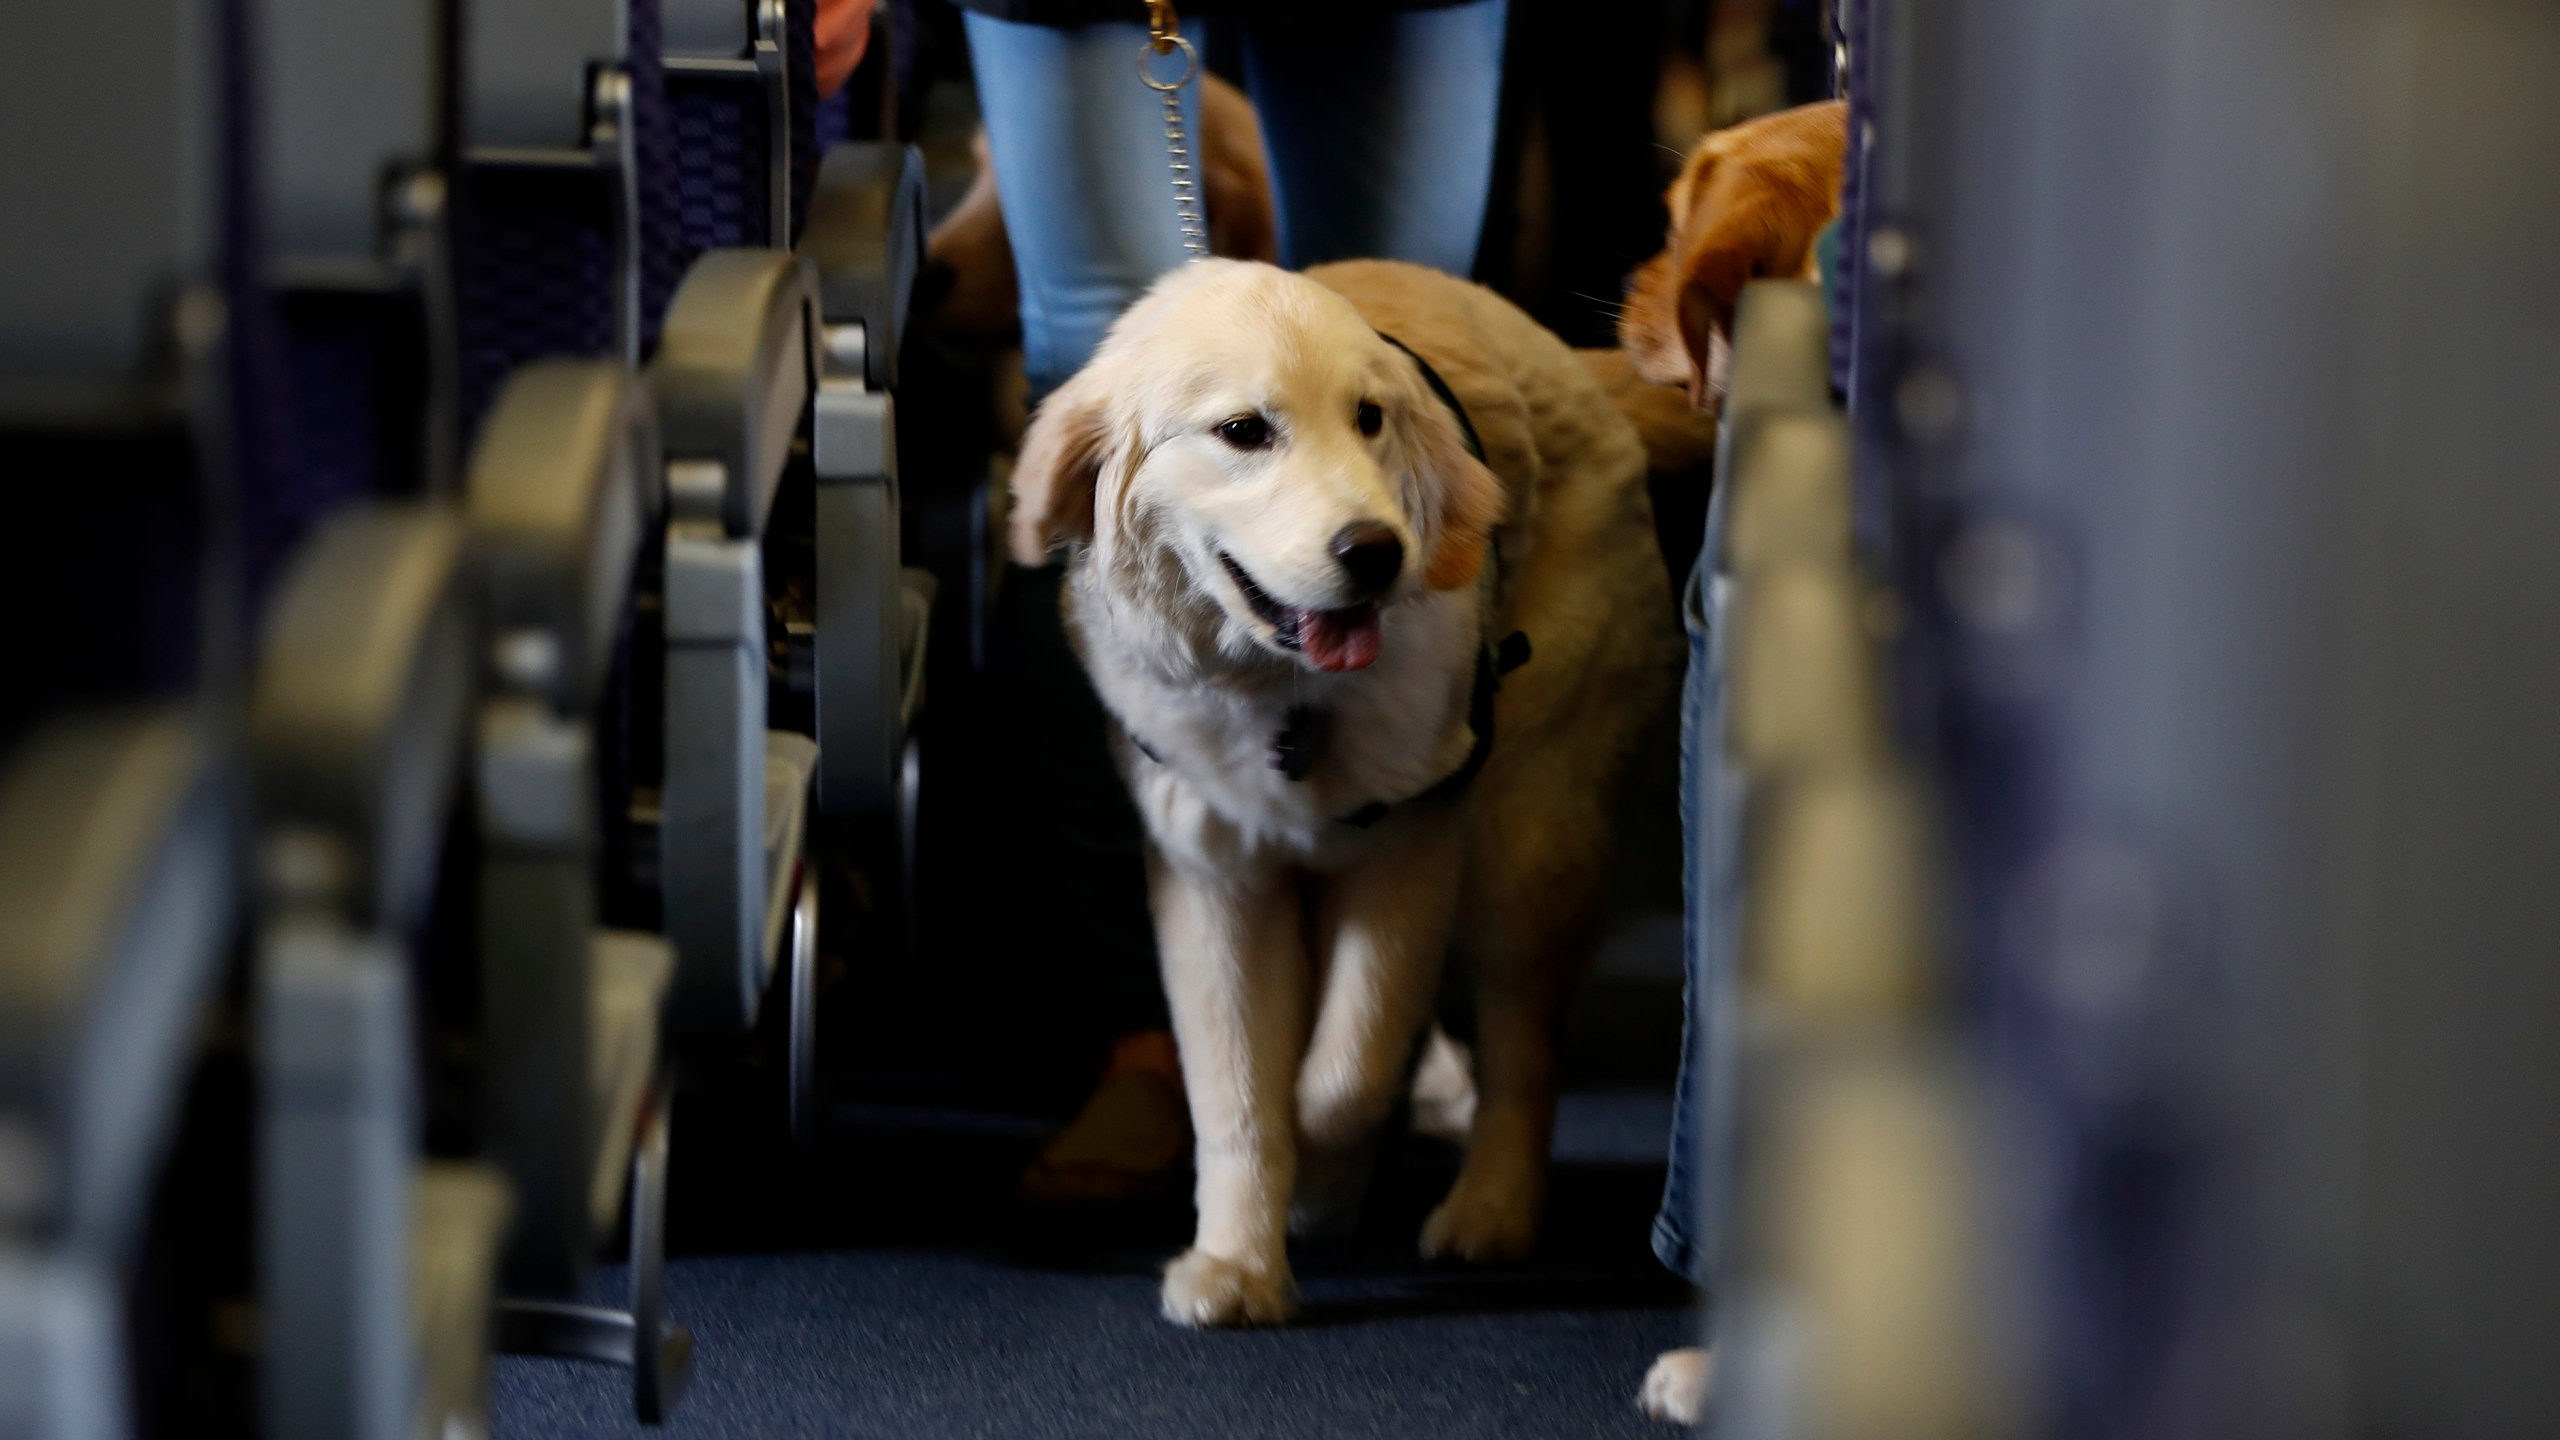 In this April 1, 2017 file photo, a service dog strolls through the isle inside a United Airlines plane at Newark Liberty International Airport while taking part in a training exercise in Newark, N.J. (AP Photo/Julio Cortez, File)